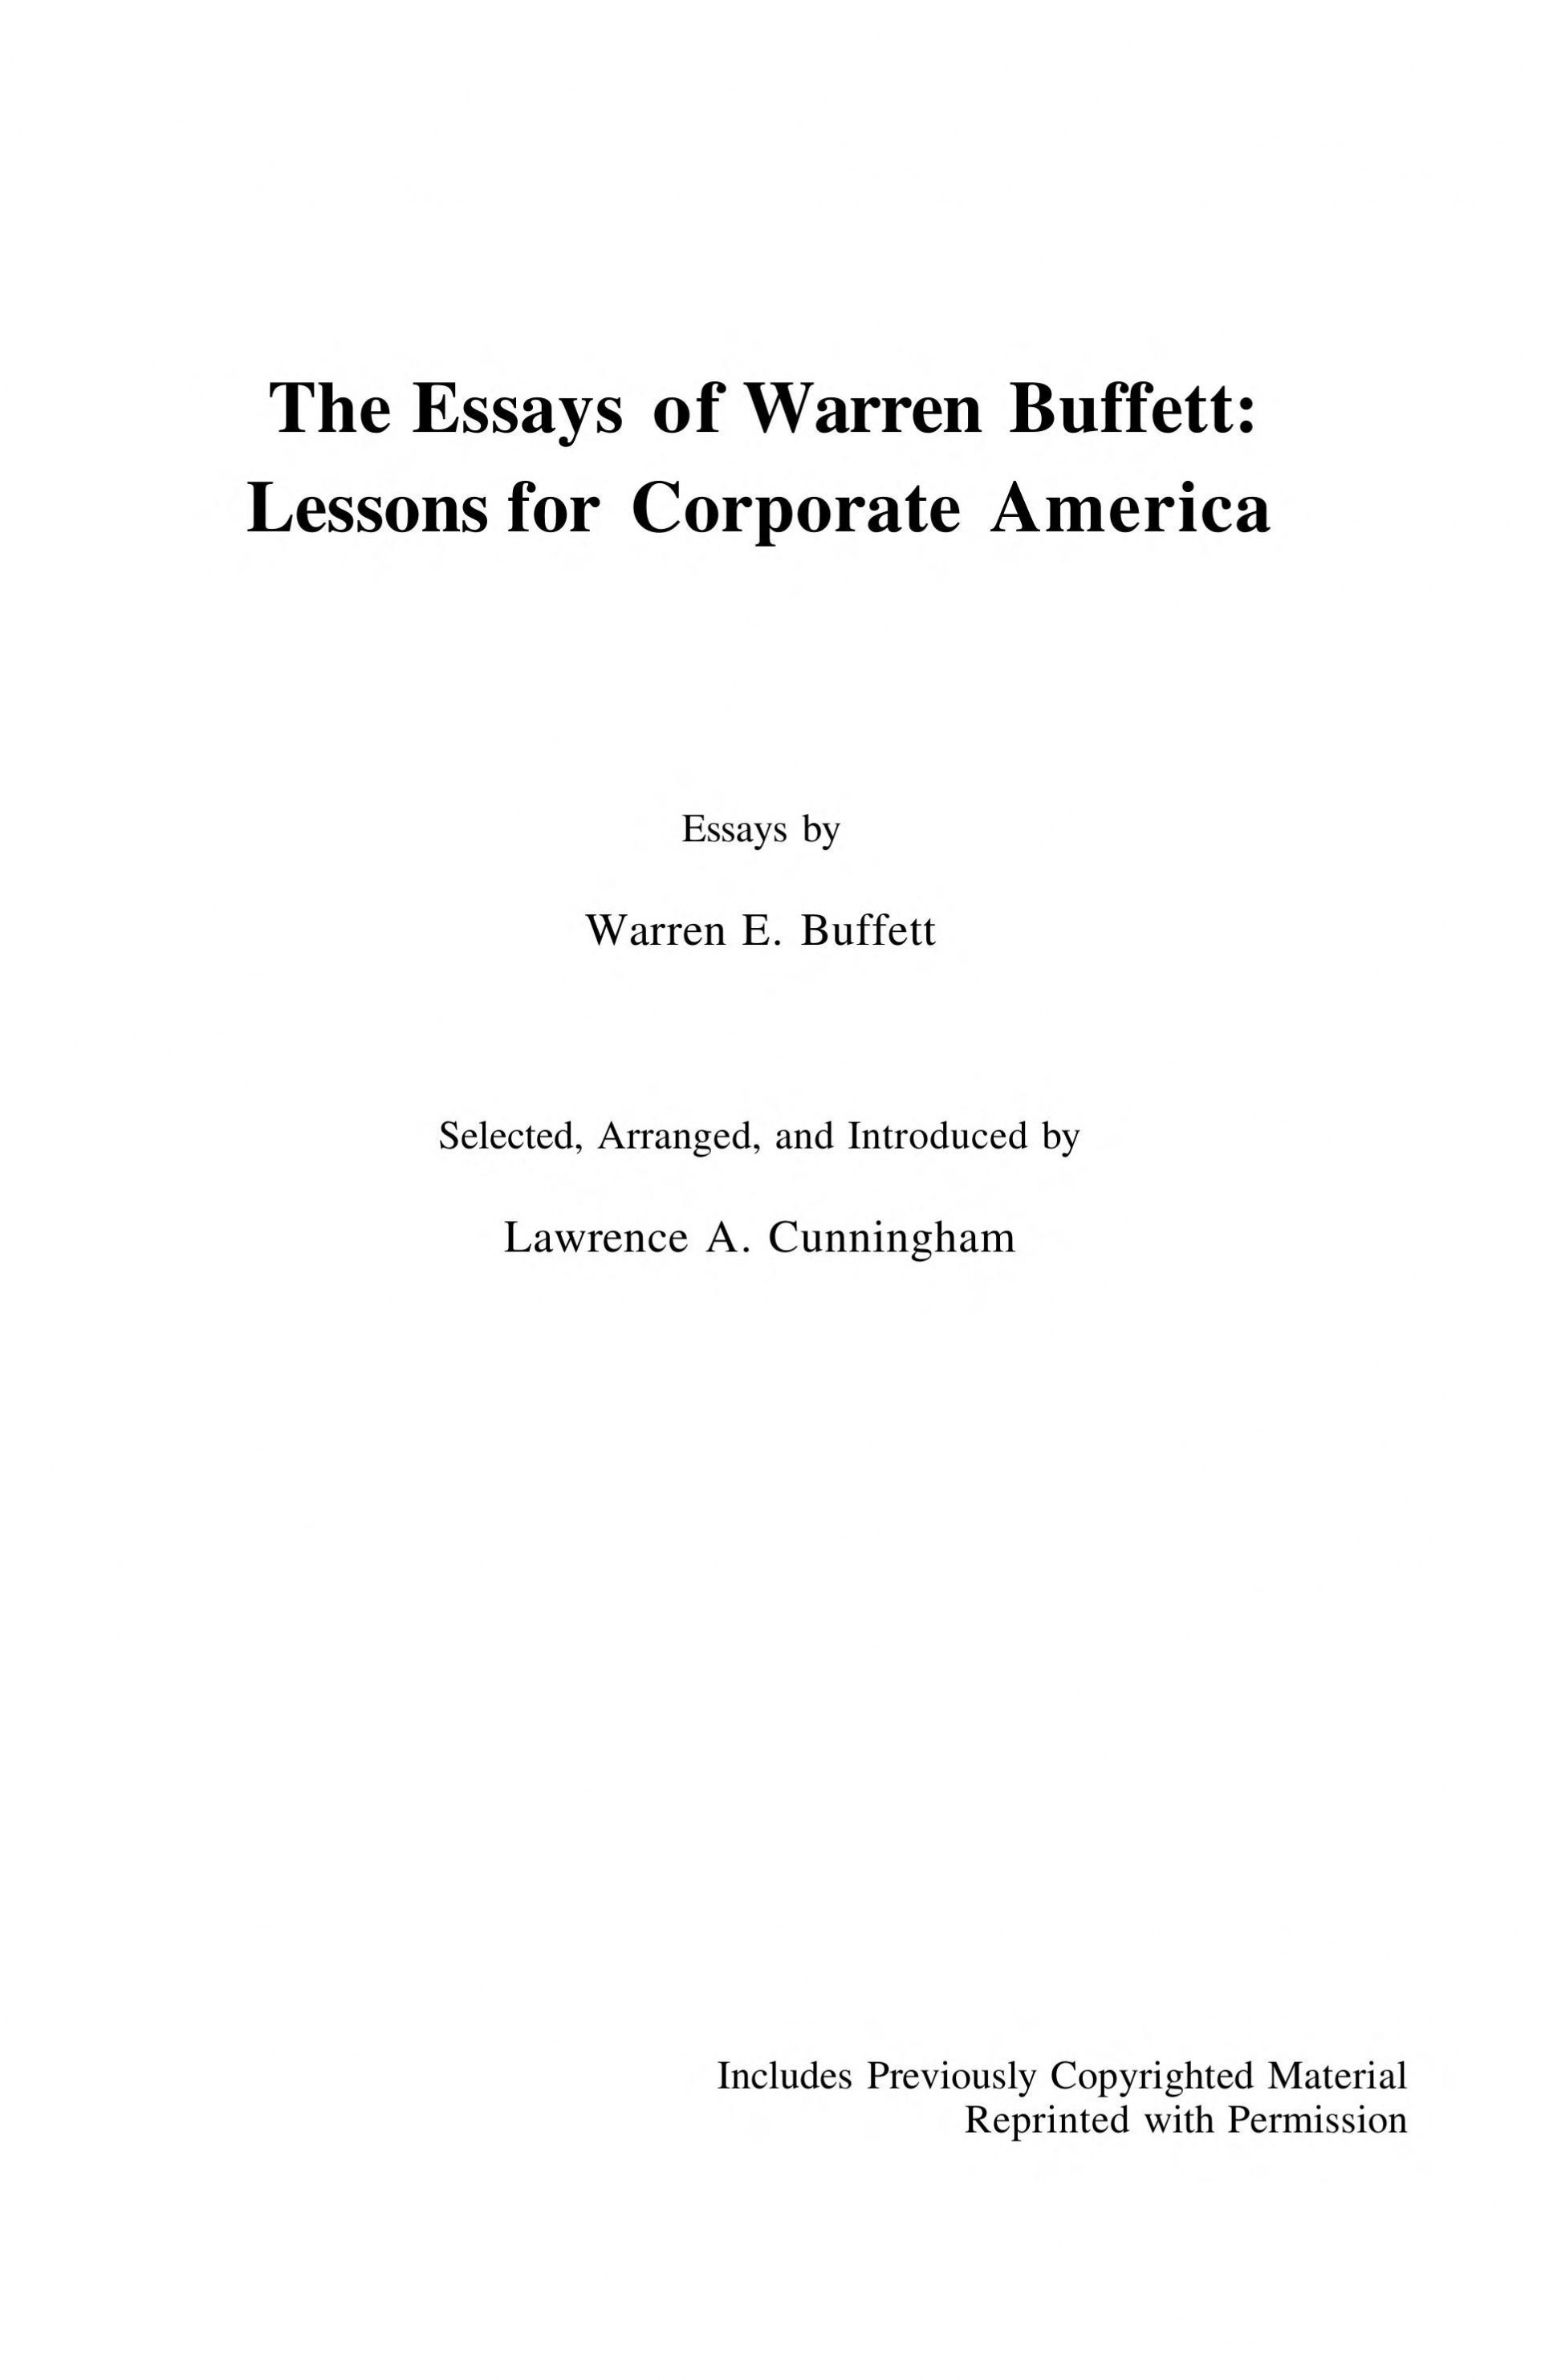 019 The Essays Of Warren Buffett Lessons For Corporate America Essay Example Remarkable Third Edition 3rd Second Pdf Audio Book 1920